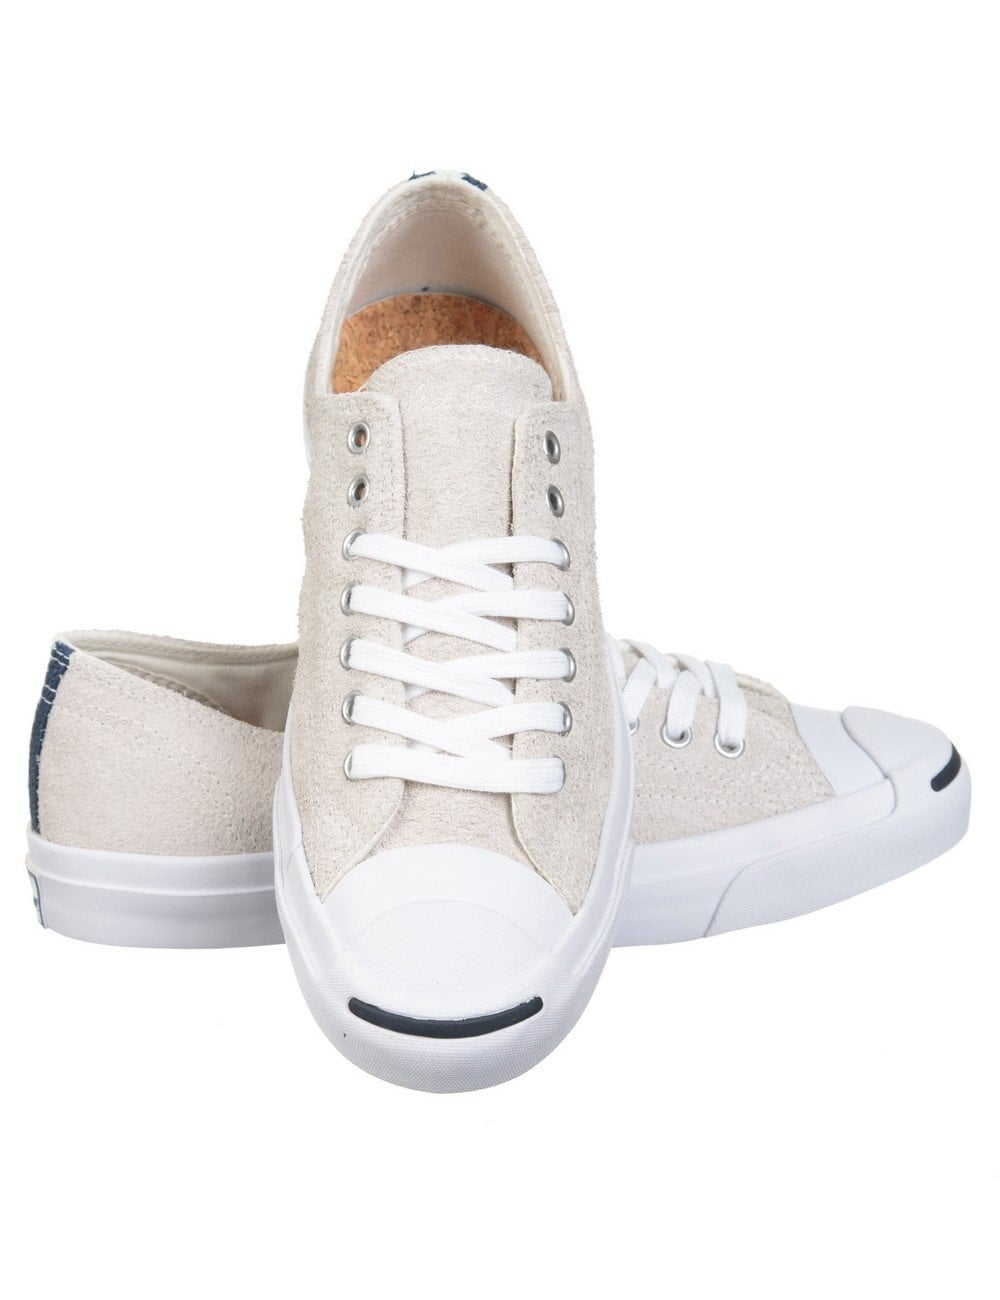 723fdccd9dc8 Converse Jack Purcell Jack Ox Shoes - Vaporous Grey - Footwear from ...